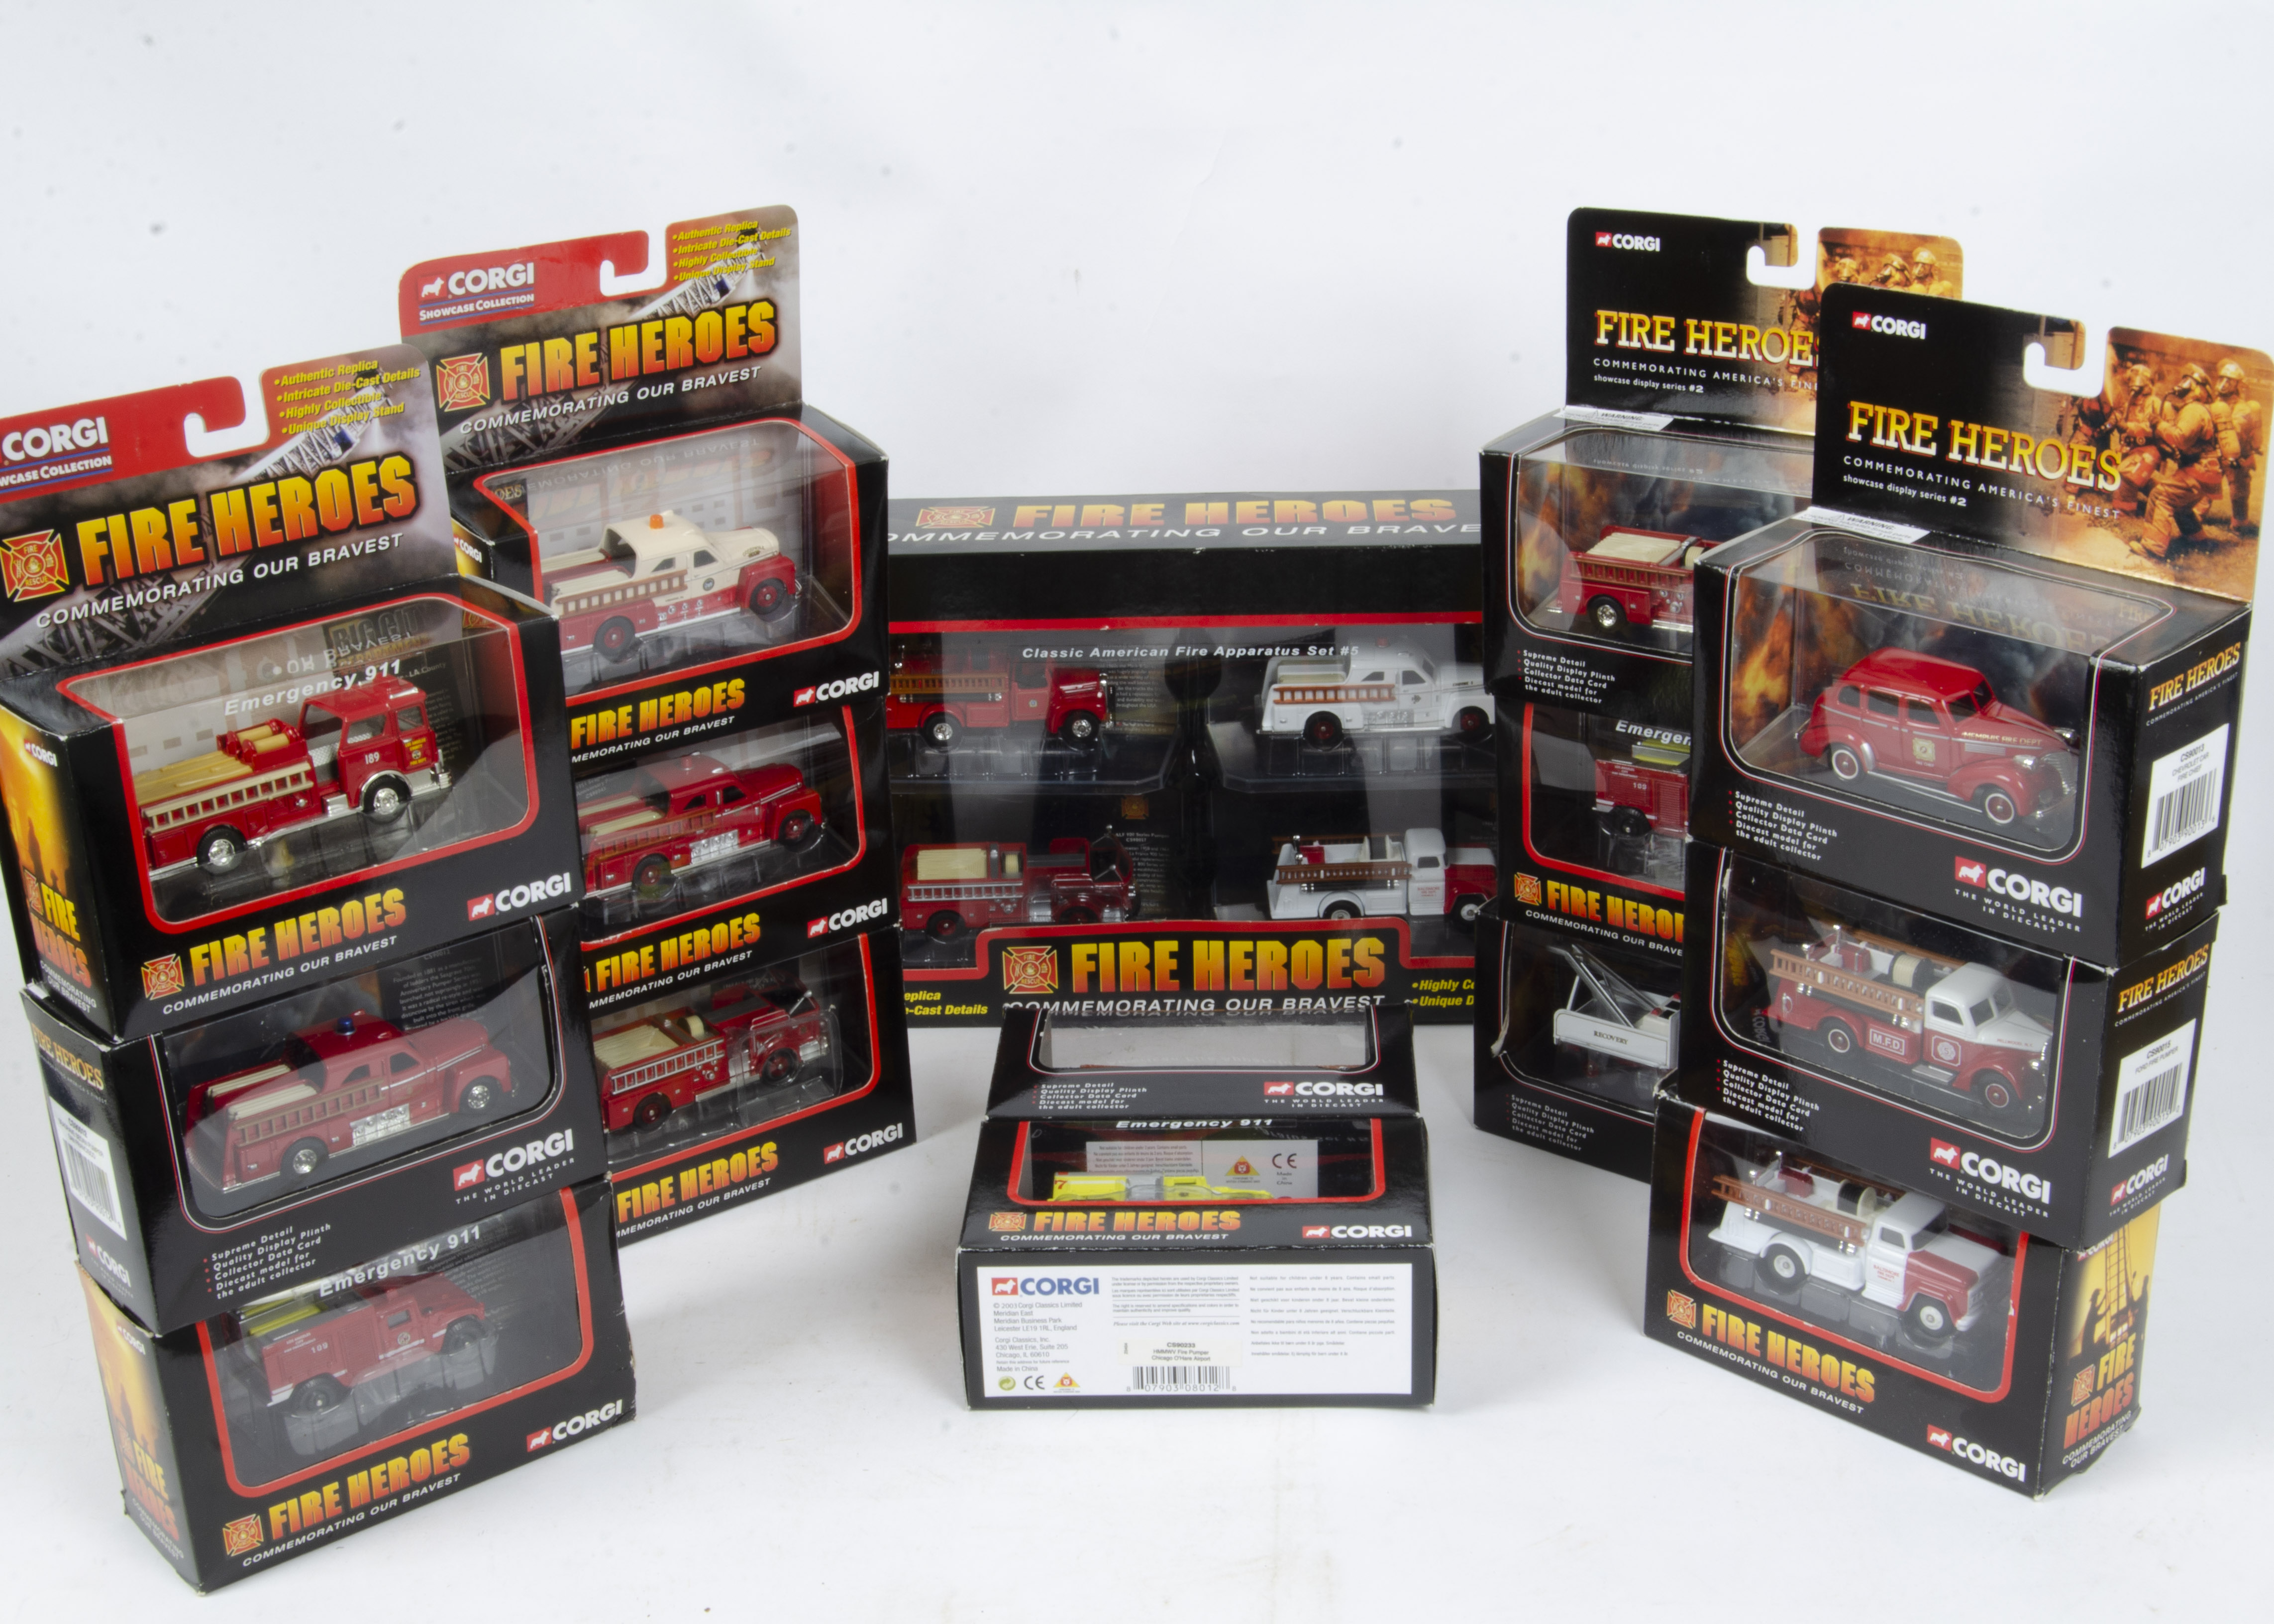 Corgi Fire Heroes Vanguards and Others, a boxed collection comprising Fire Heroes (24) including a